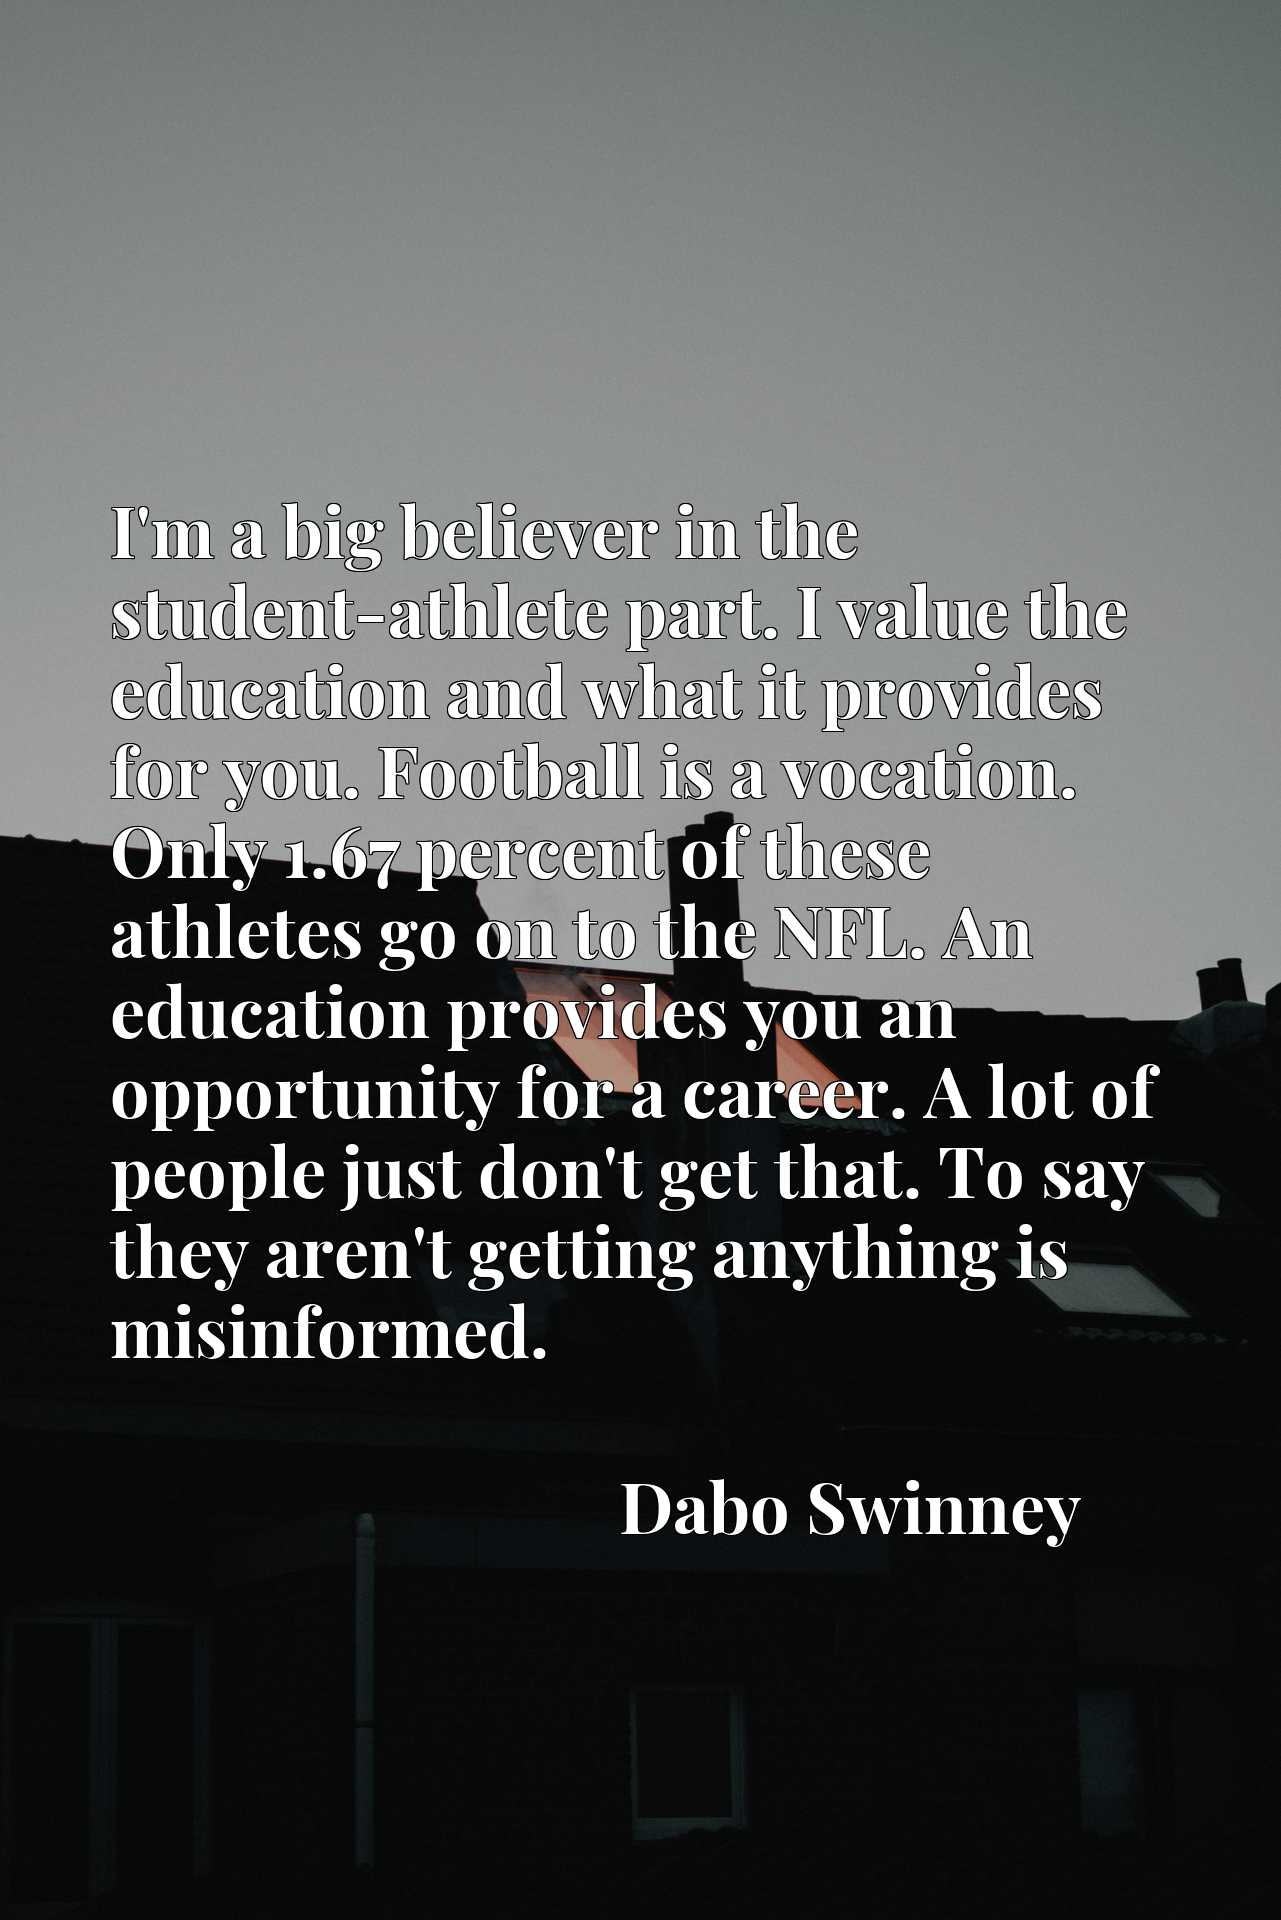 I'm a big believer in the student-athlete part. I value the education and what it provides for you. Football is a vocation. Only 1.67 percent of these athletes go on to the NFL. An education provides you an opportunity for a career. A lot of people just don't get that. To say they aren't getting anything is misinformed.